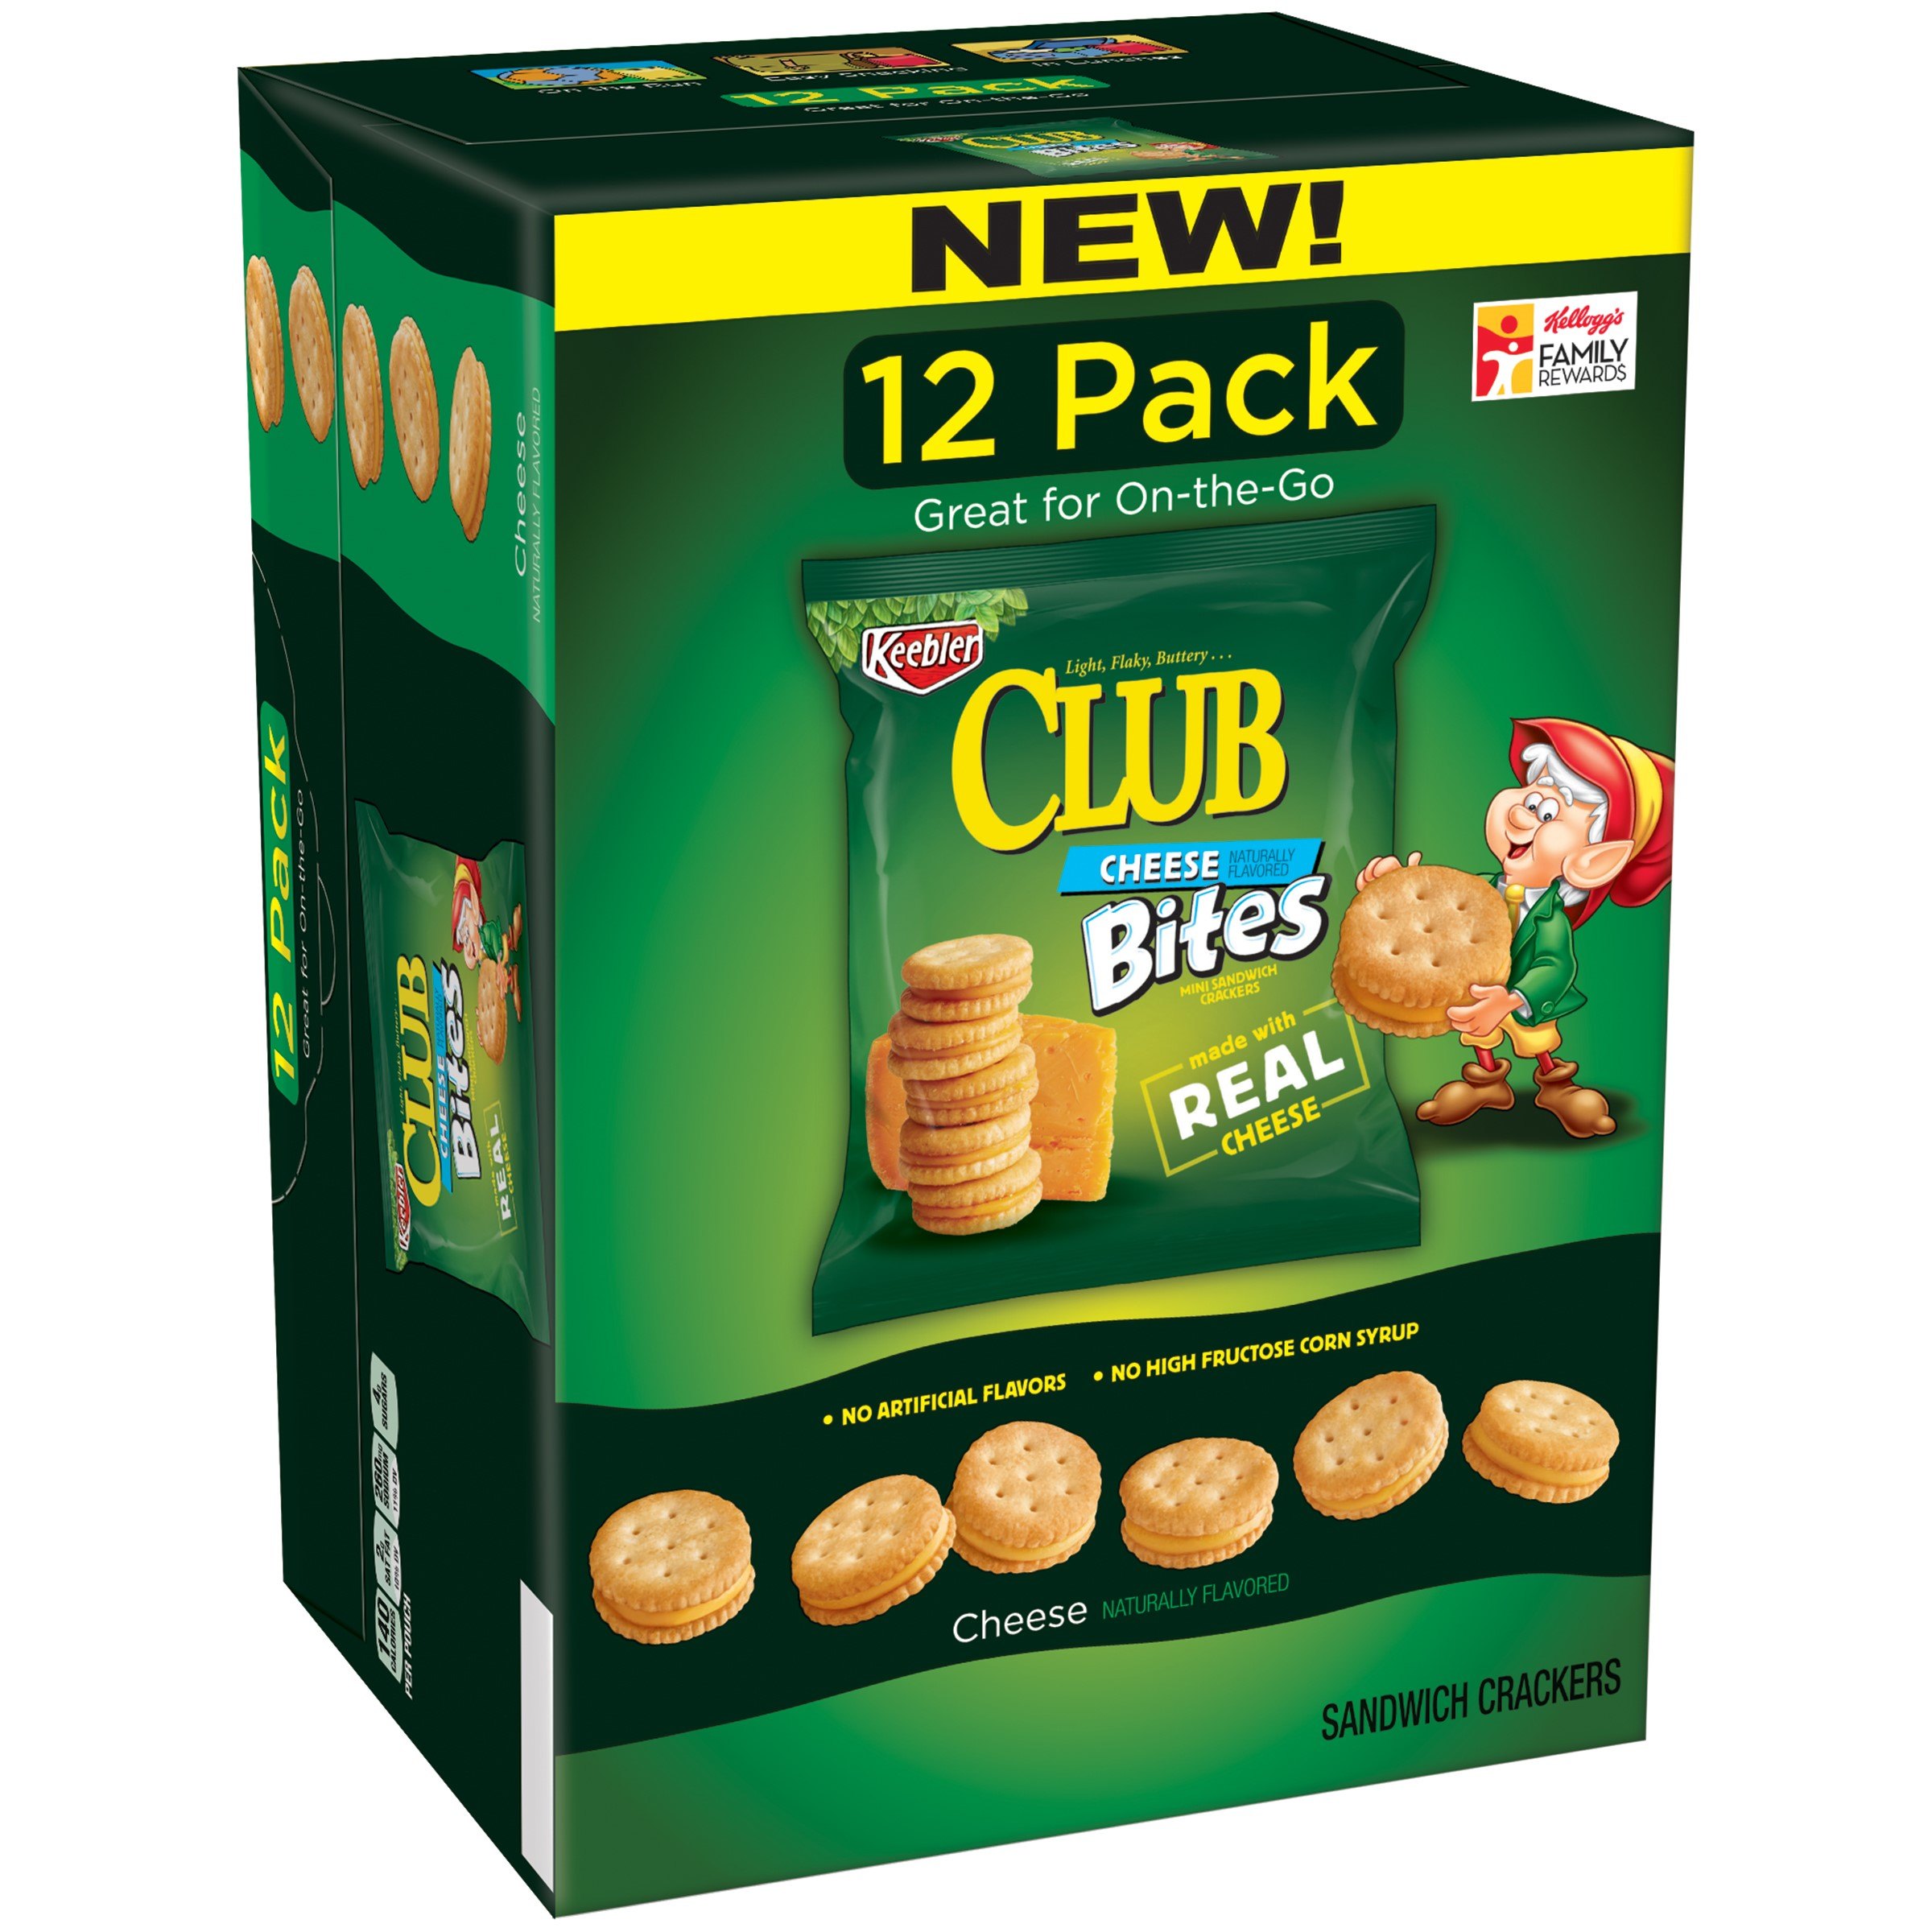 Keebler Club Bites Sandwich Crackers, Cheddar Cheese, 12 Ct